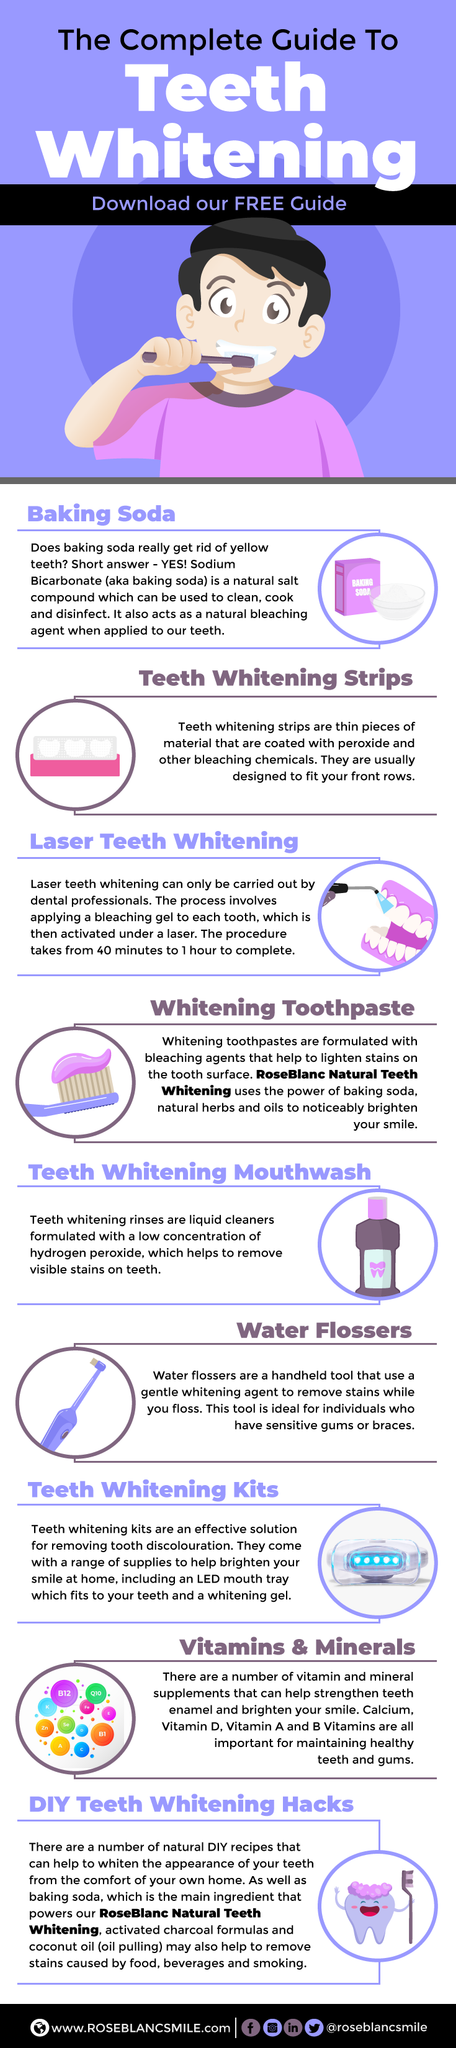 A Complete Guide To Teeth Whitening eBook